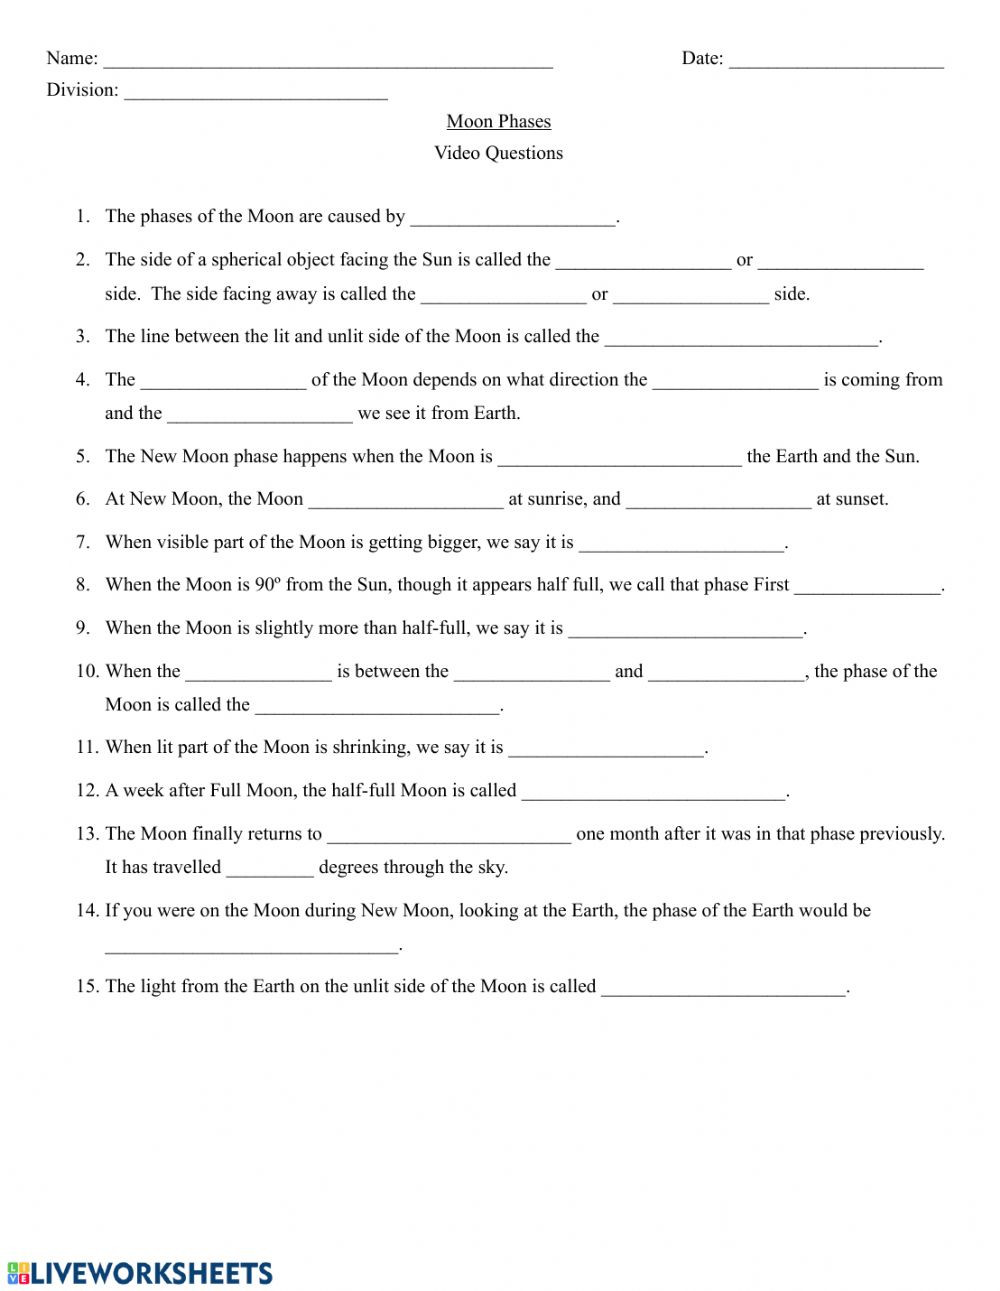 Astronomy Worksheets High School Pdf Crash Course astronomy Moon Phases Worksheet